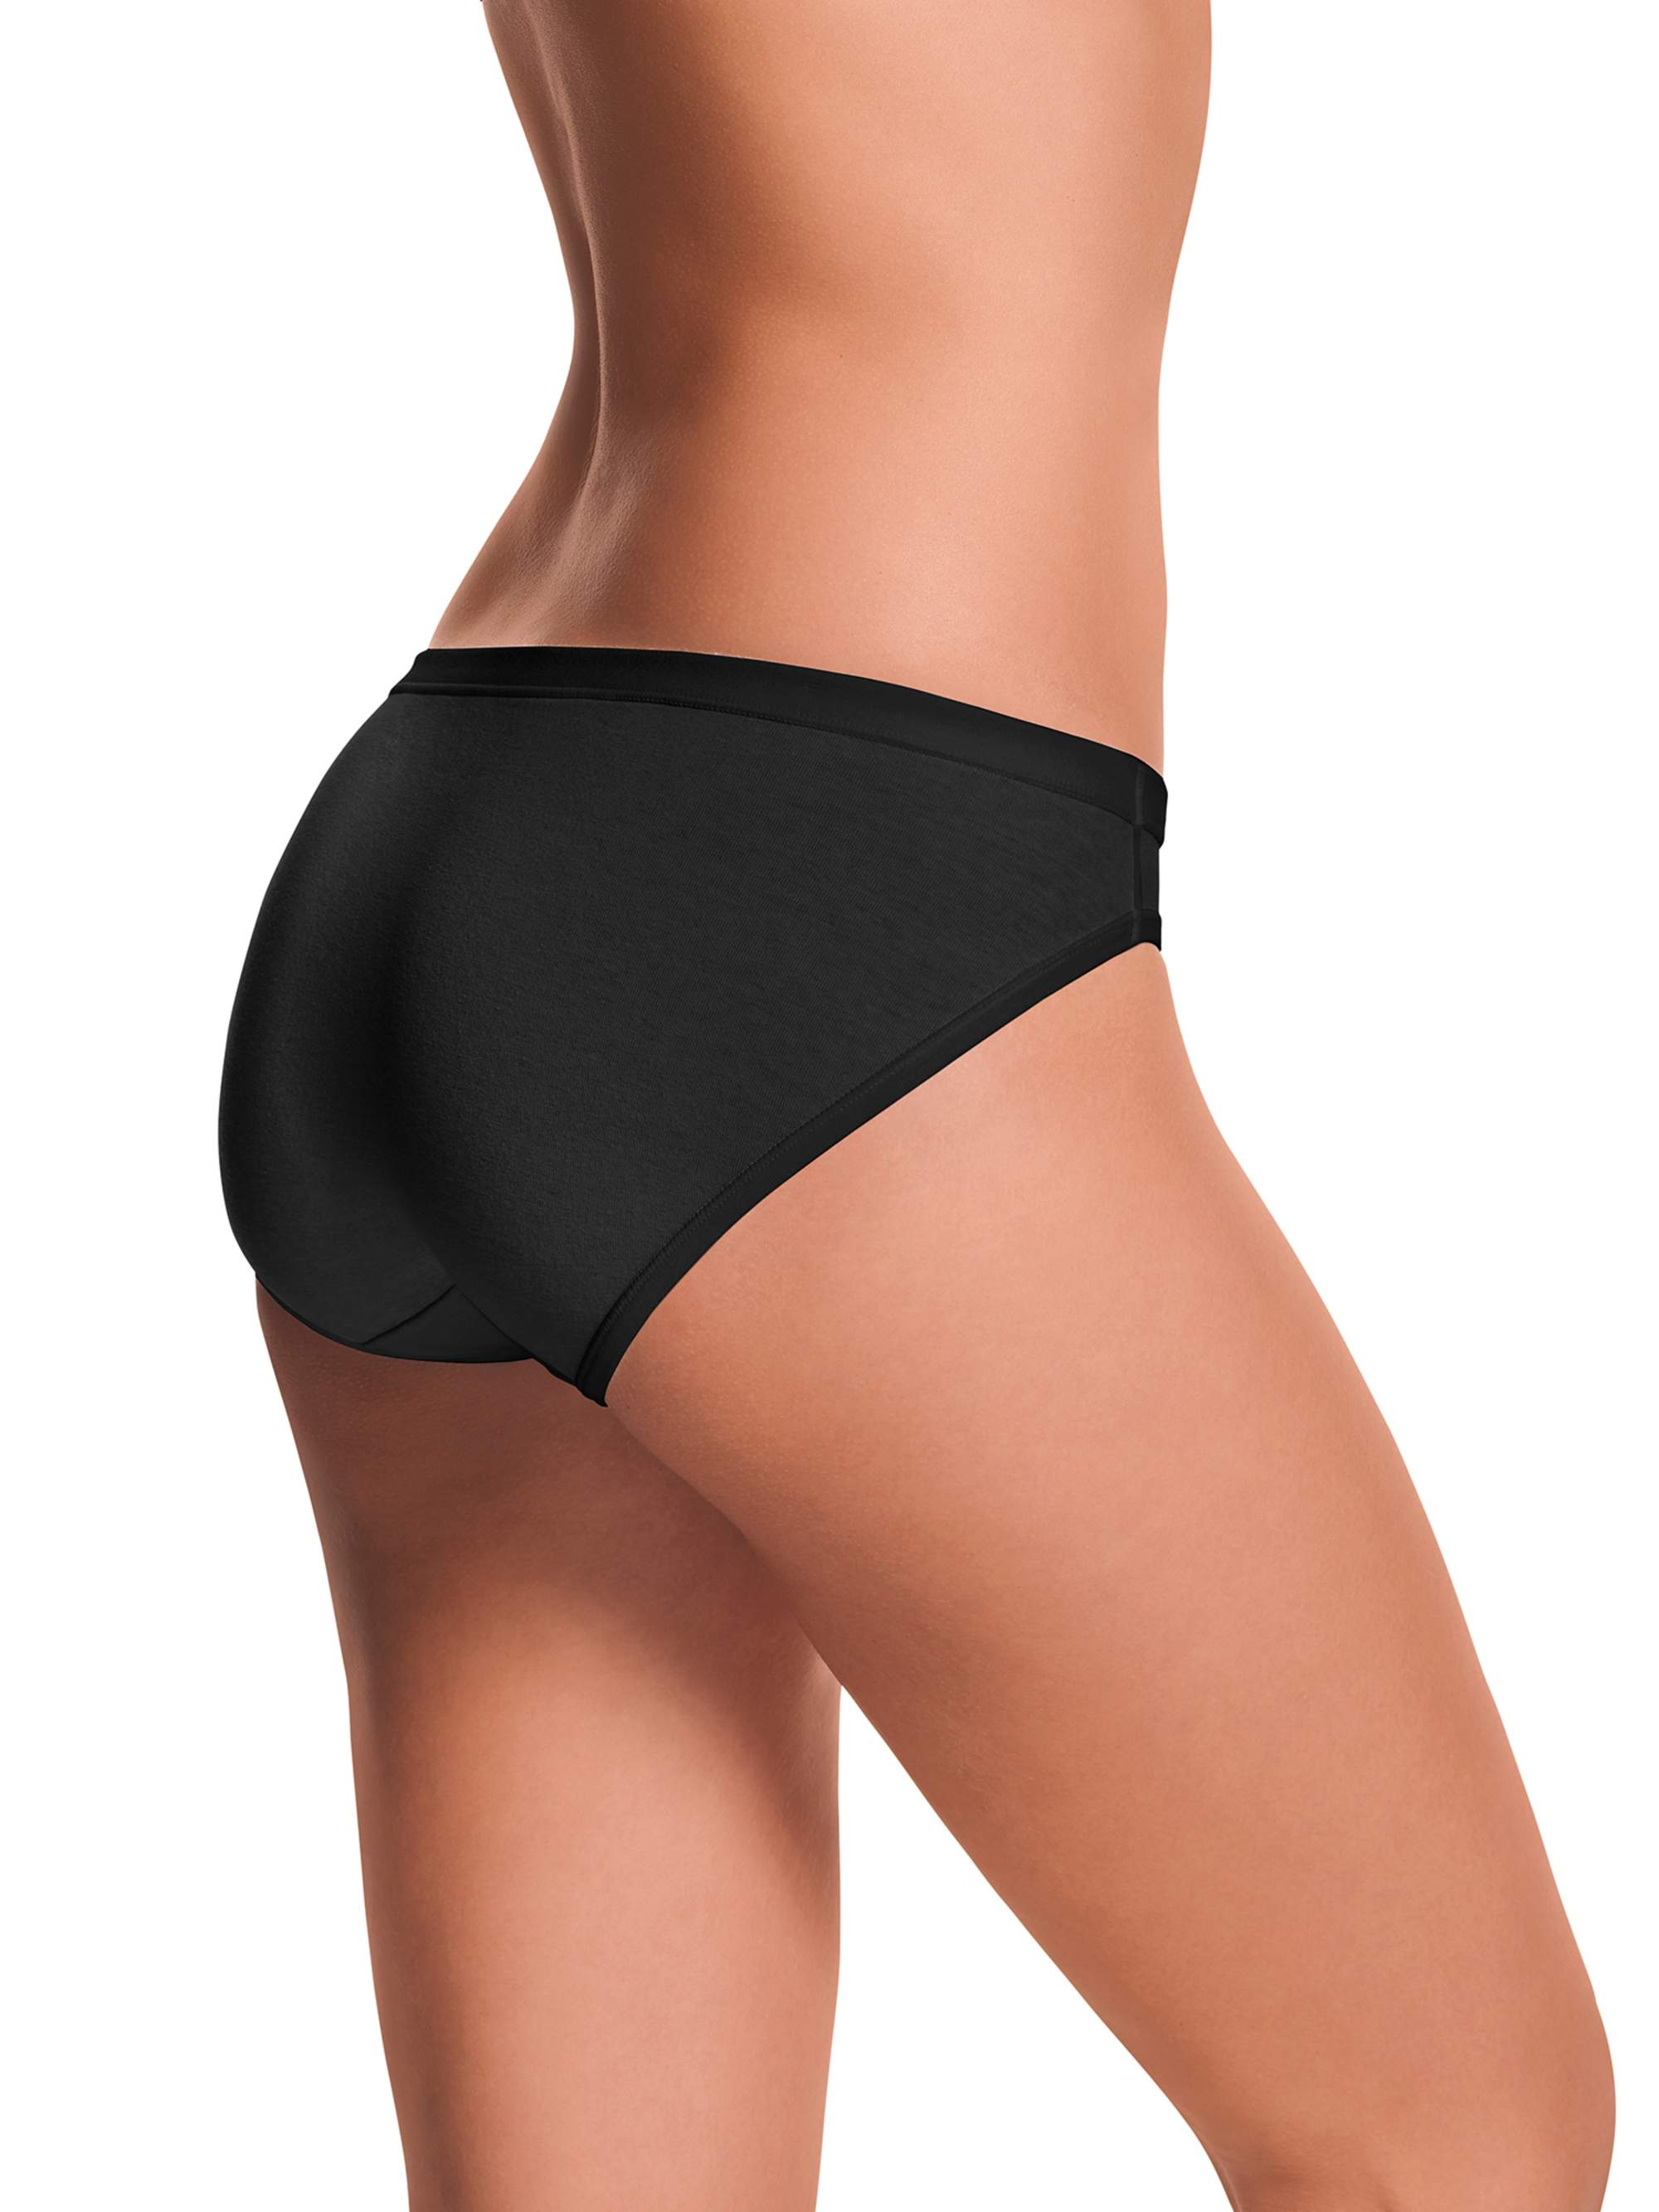 Women's Assorted Cotton Stretch Bikini Panties - 3 Pack